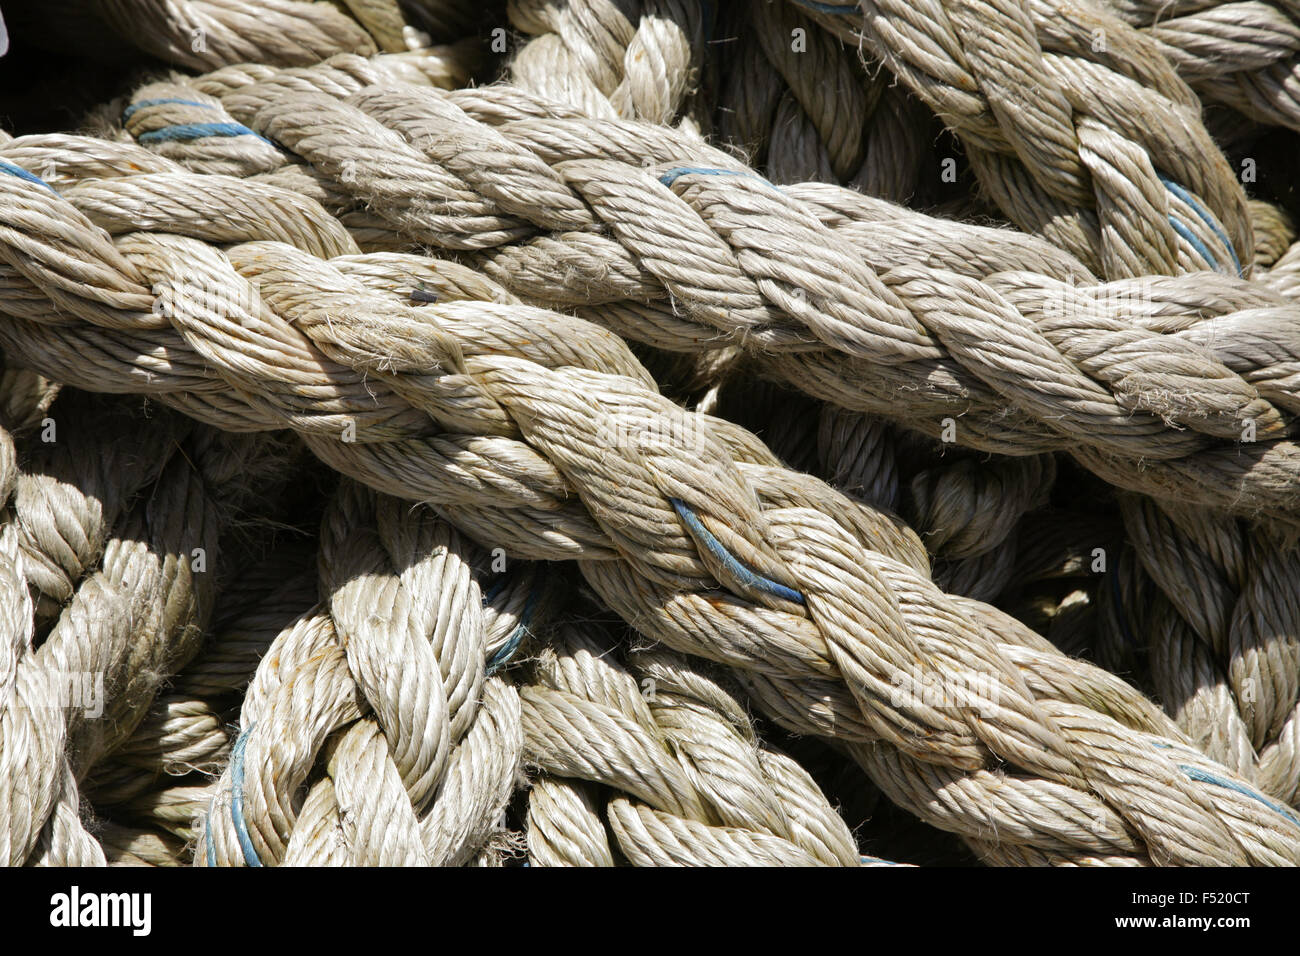 Lengths of grey rope. - Stock Image